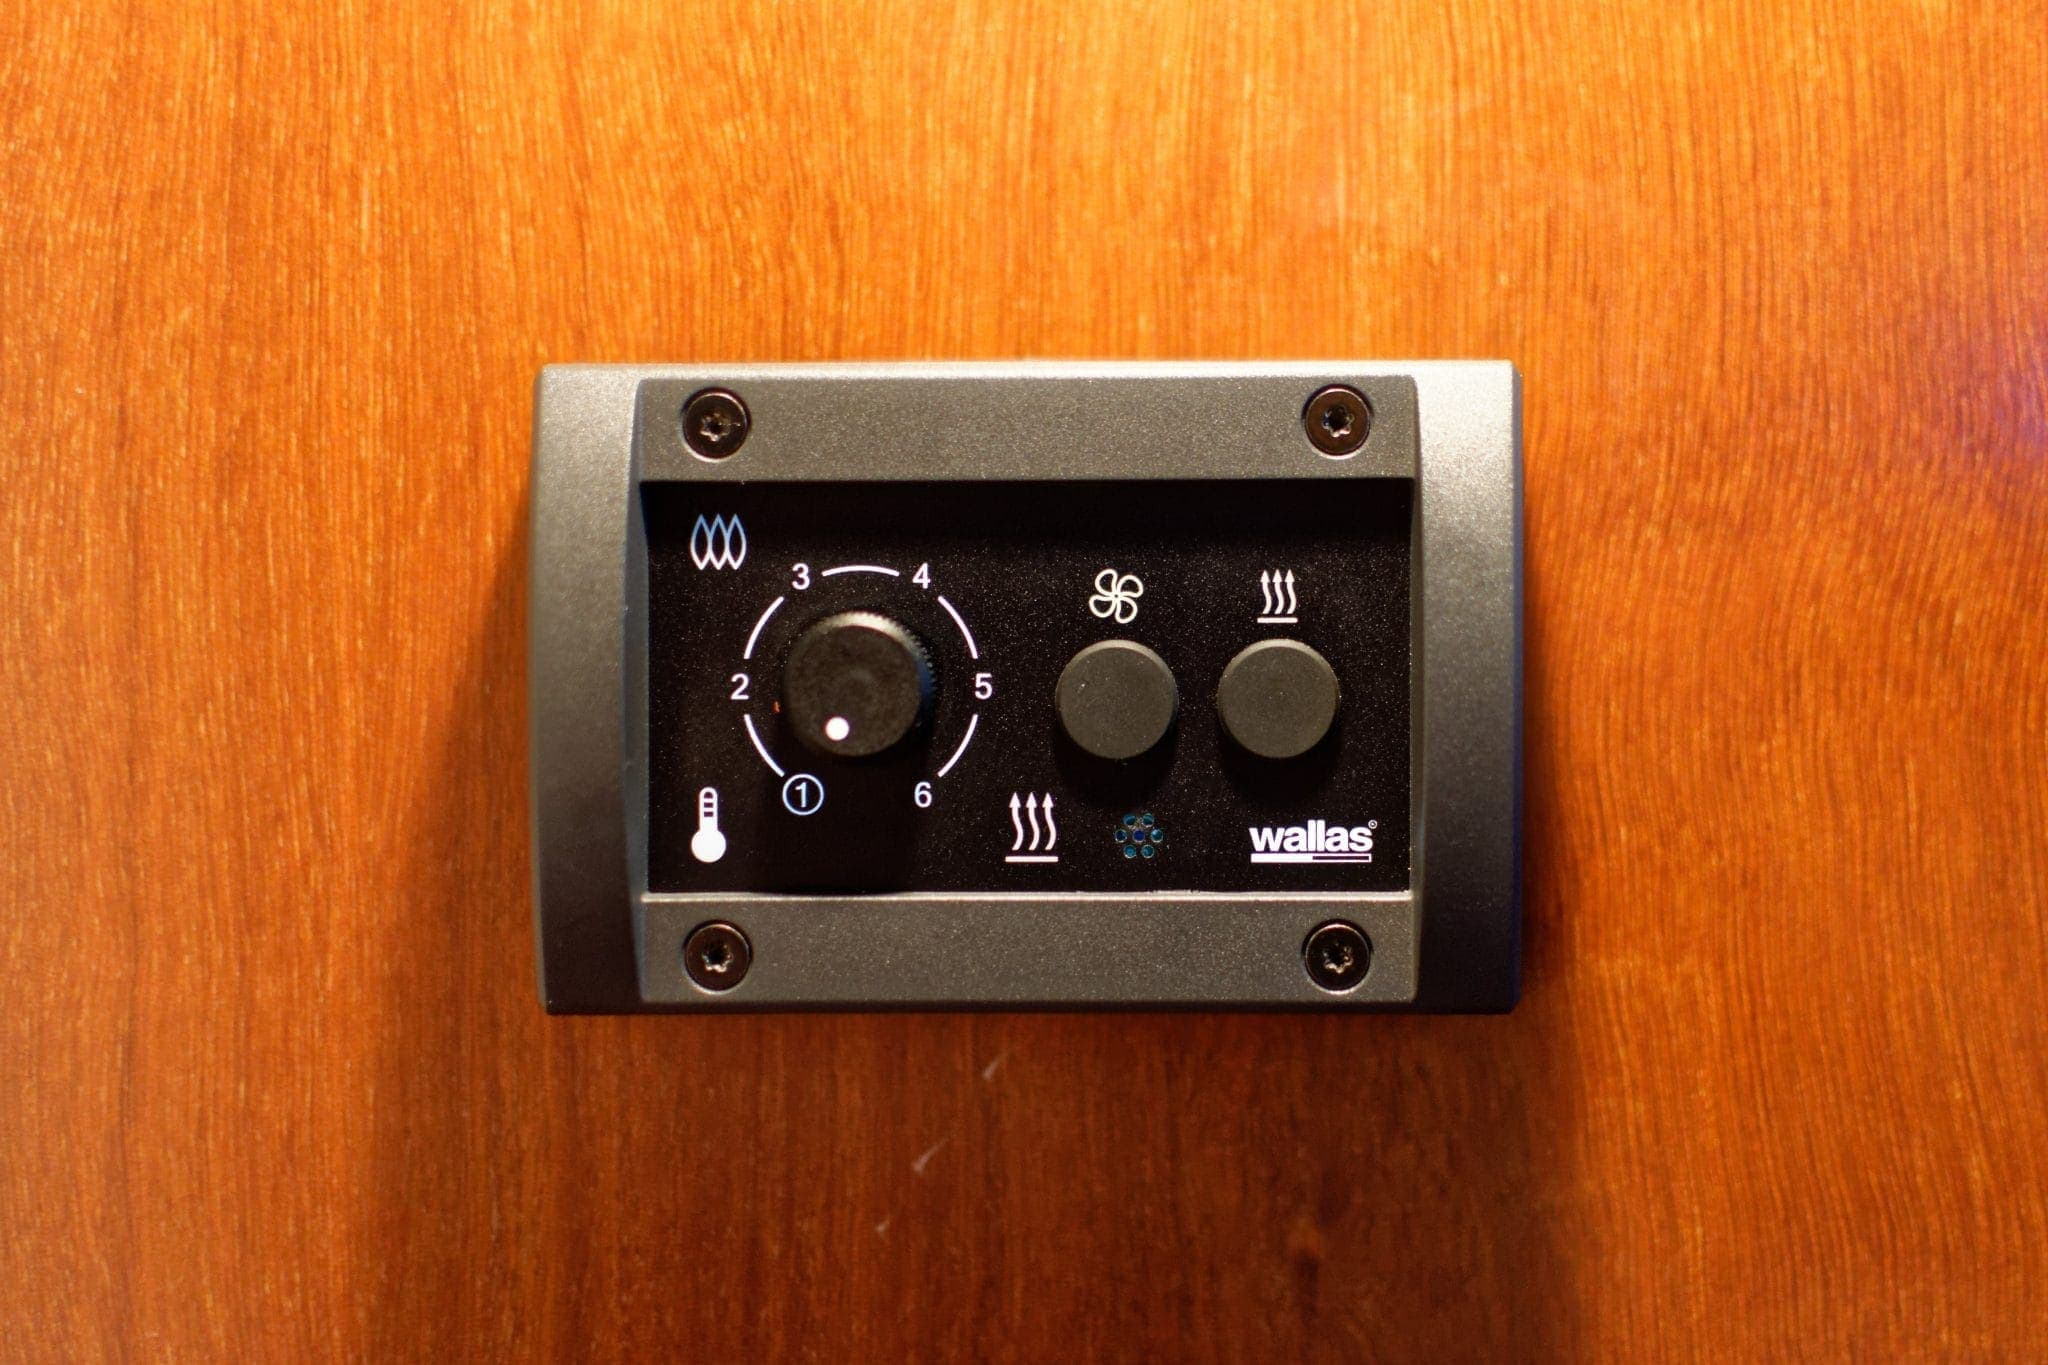 Control panel in stern stateroom